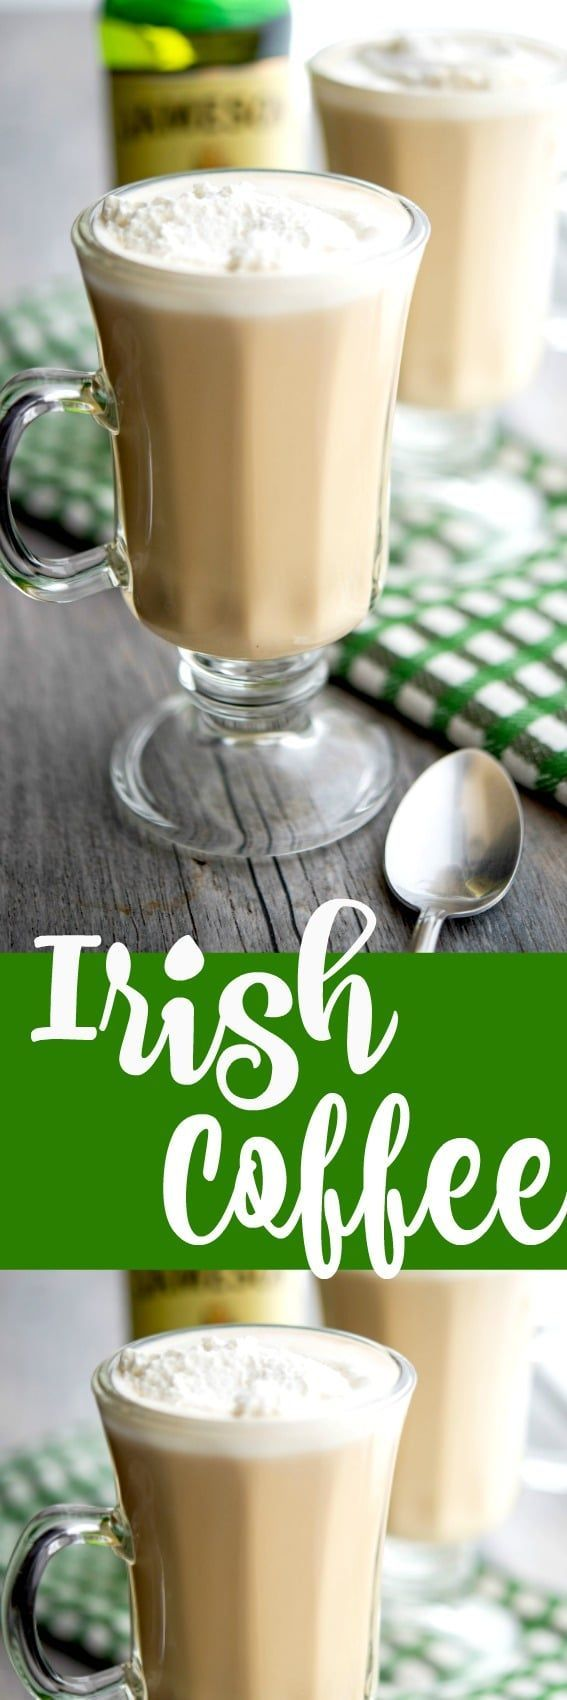 Warm your soul with this recipe for homemade Irish Coffee made with freshly brewed coffee and Irish whiskey; then topped with a dollop of whipped cream. #coffee #irish #homemade #whiskey #stpatricksday